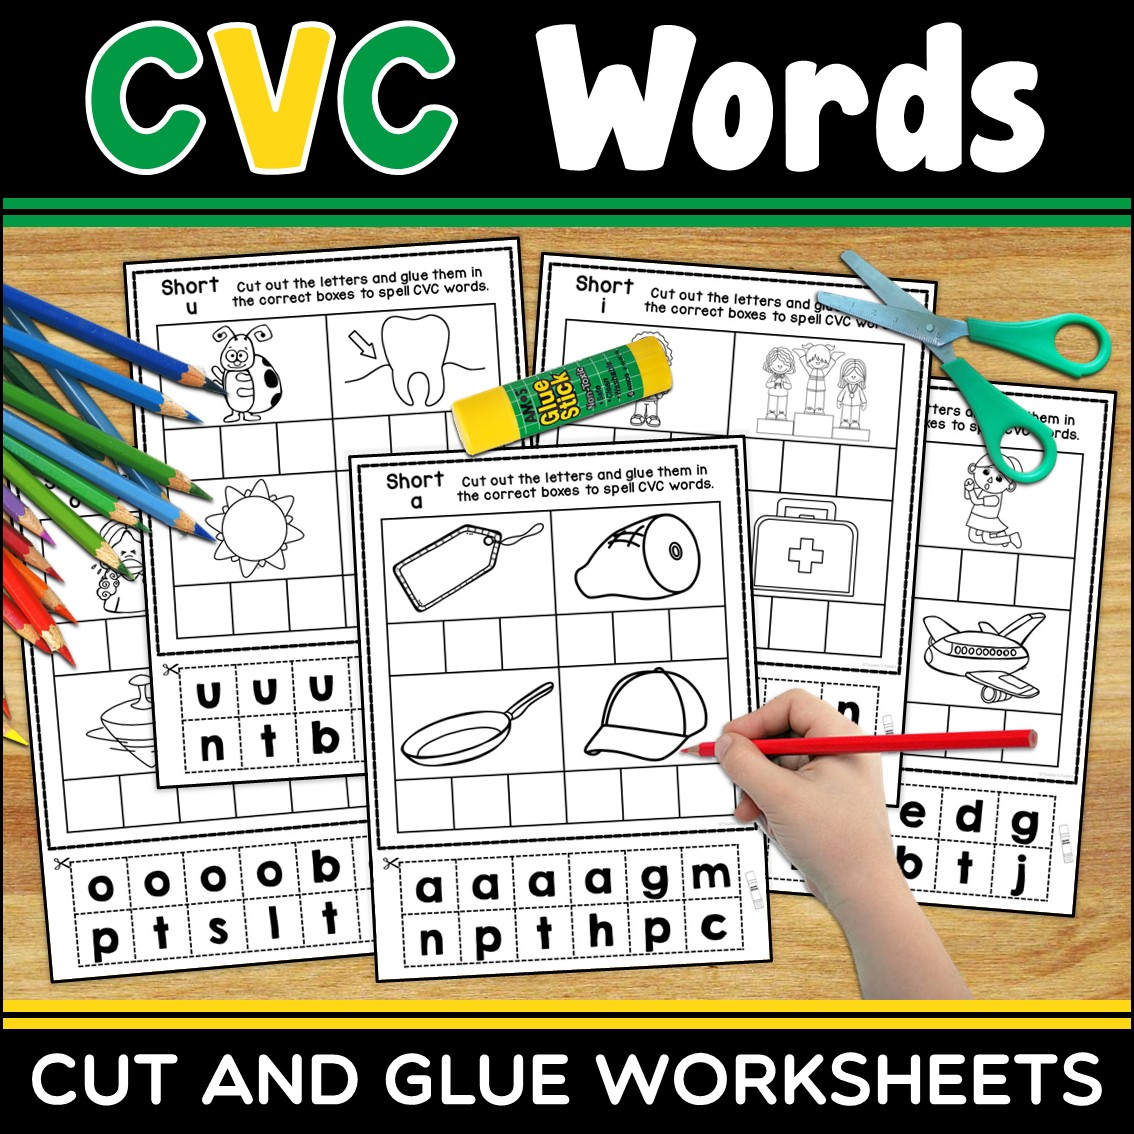 Cvc Words Cut And Glue Worksheets